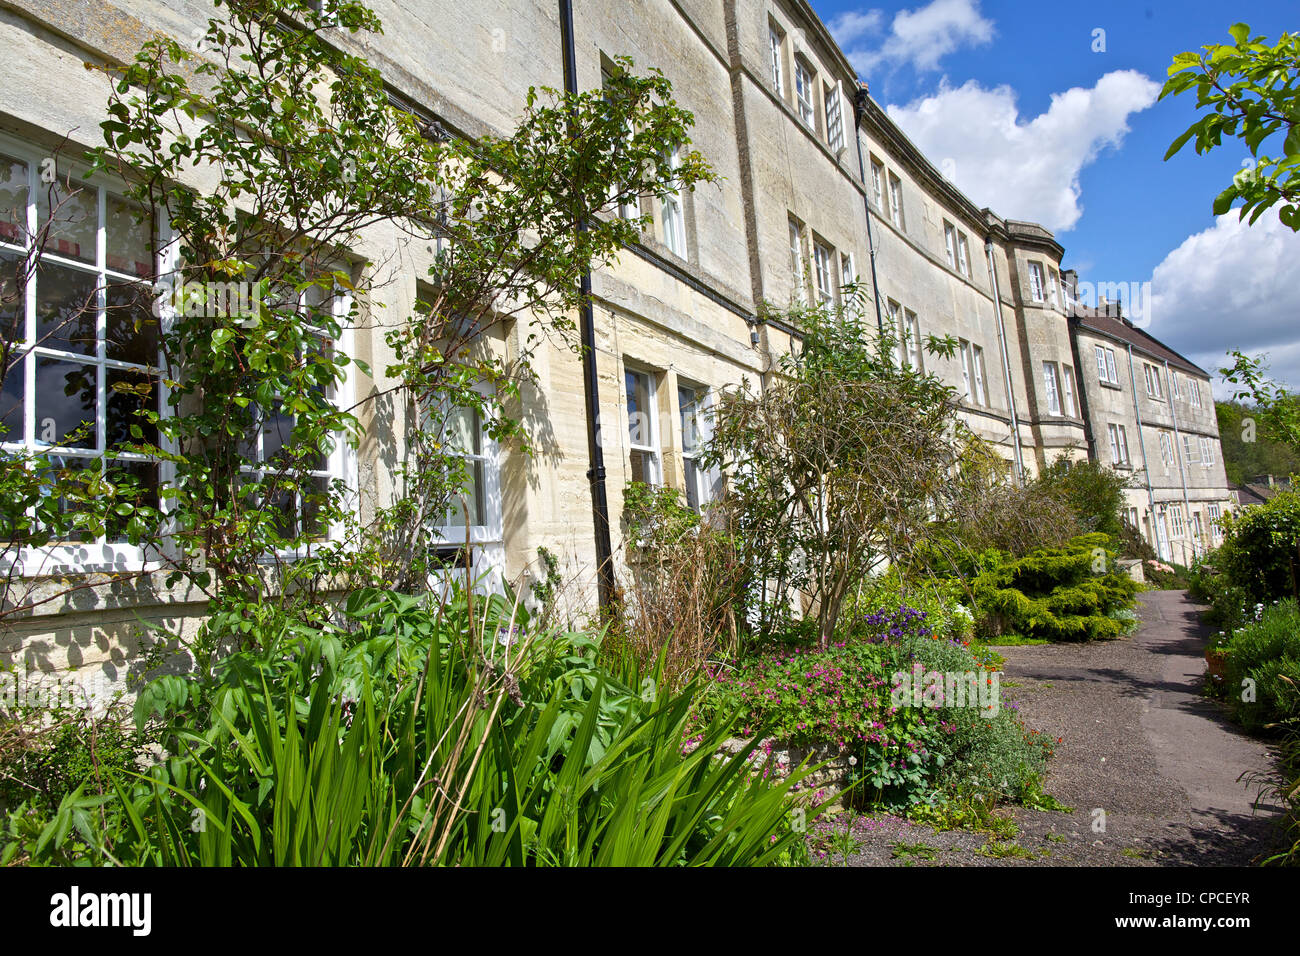 Weaver's cottages at Tory in Bradford Upon Avon in Wiltshire - Stock Image